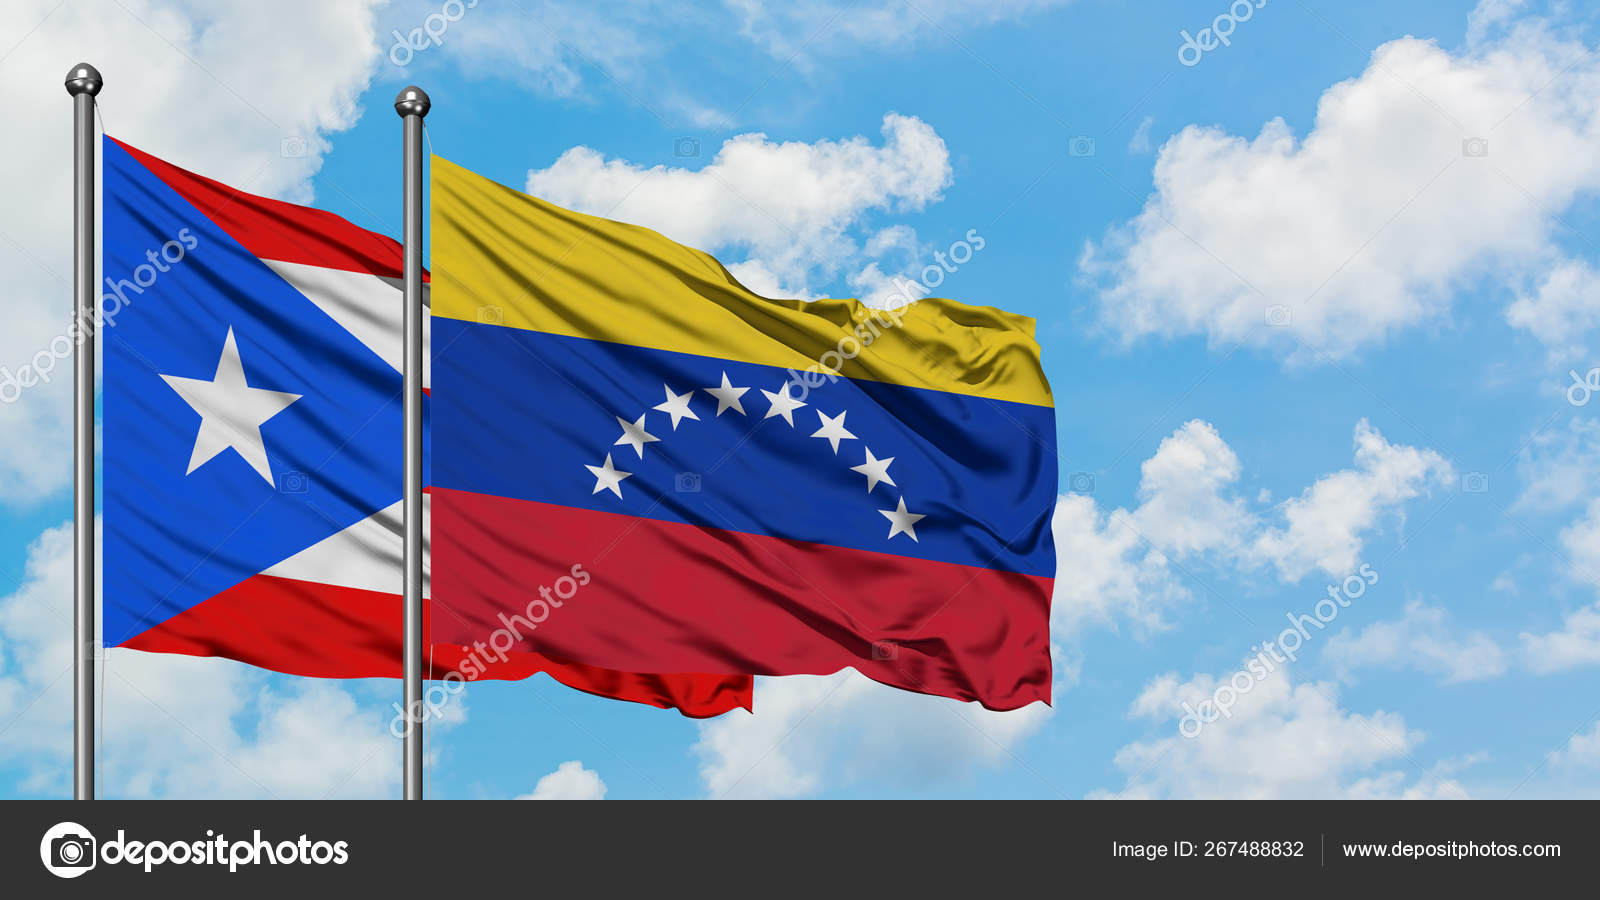 Puerto Rico And Venezuela Flag Waving In The Wind Against White